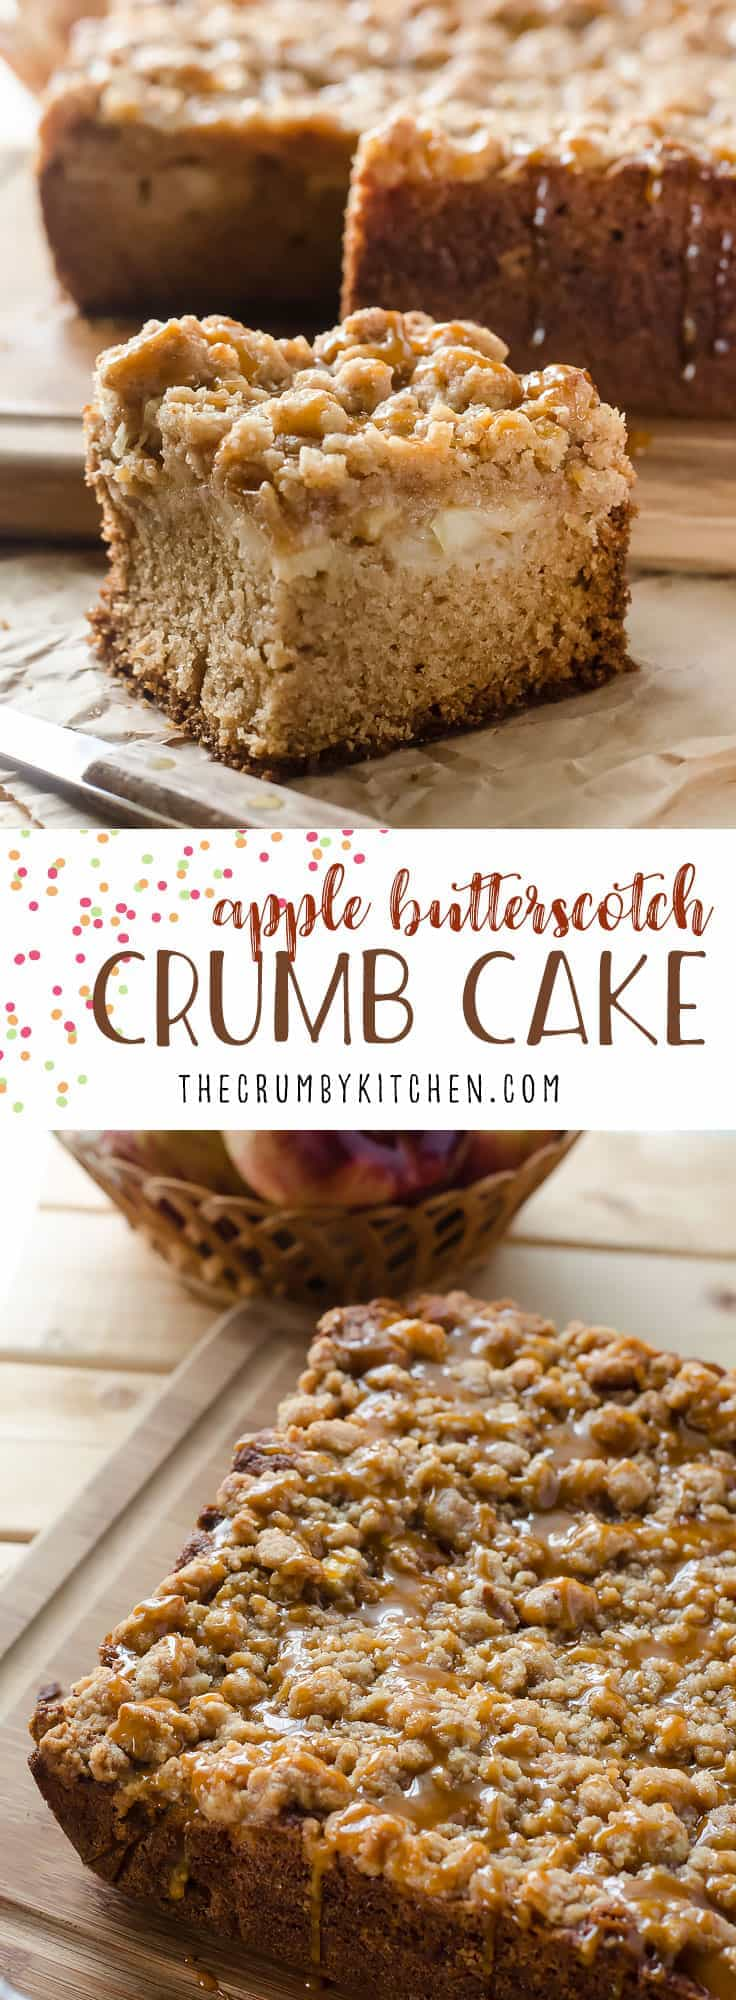 Classic crumb cake with an autumn twist! This sweet Apple Butterscotch Crumb Cake is loaded with apples, then drizzled with homemade butterscotch sauce that you're going to want to put on everything!